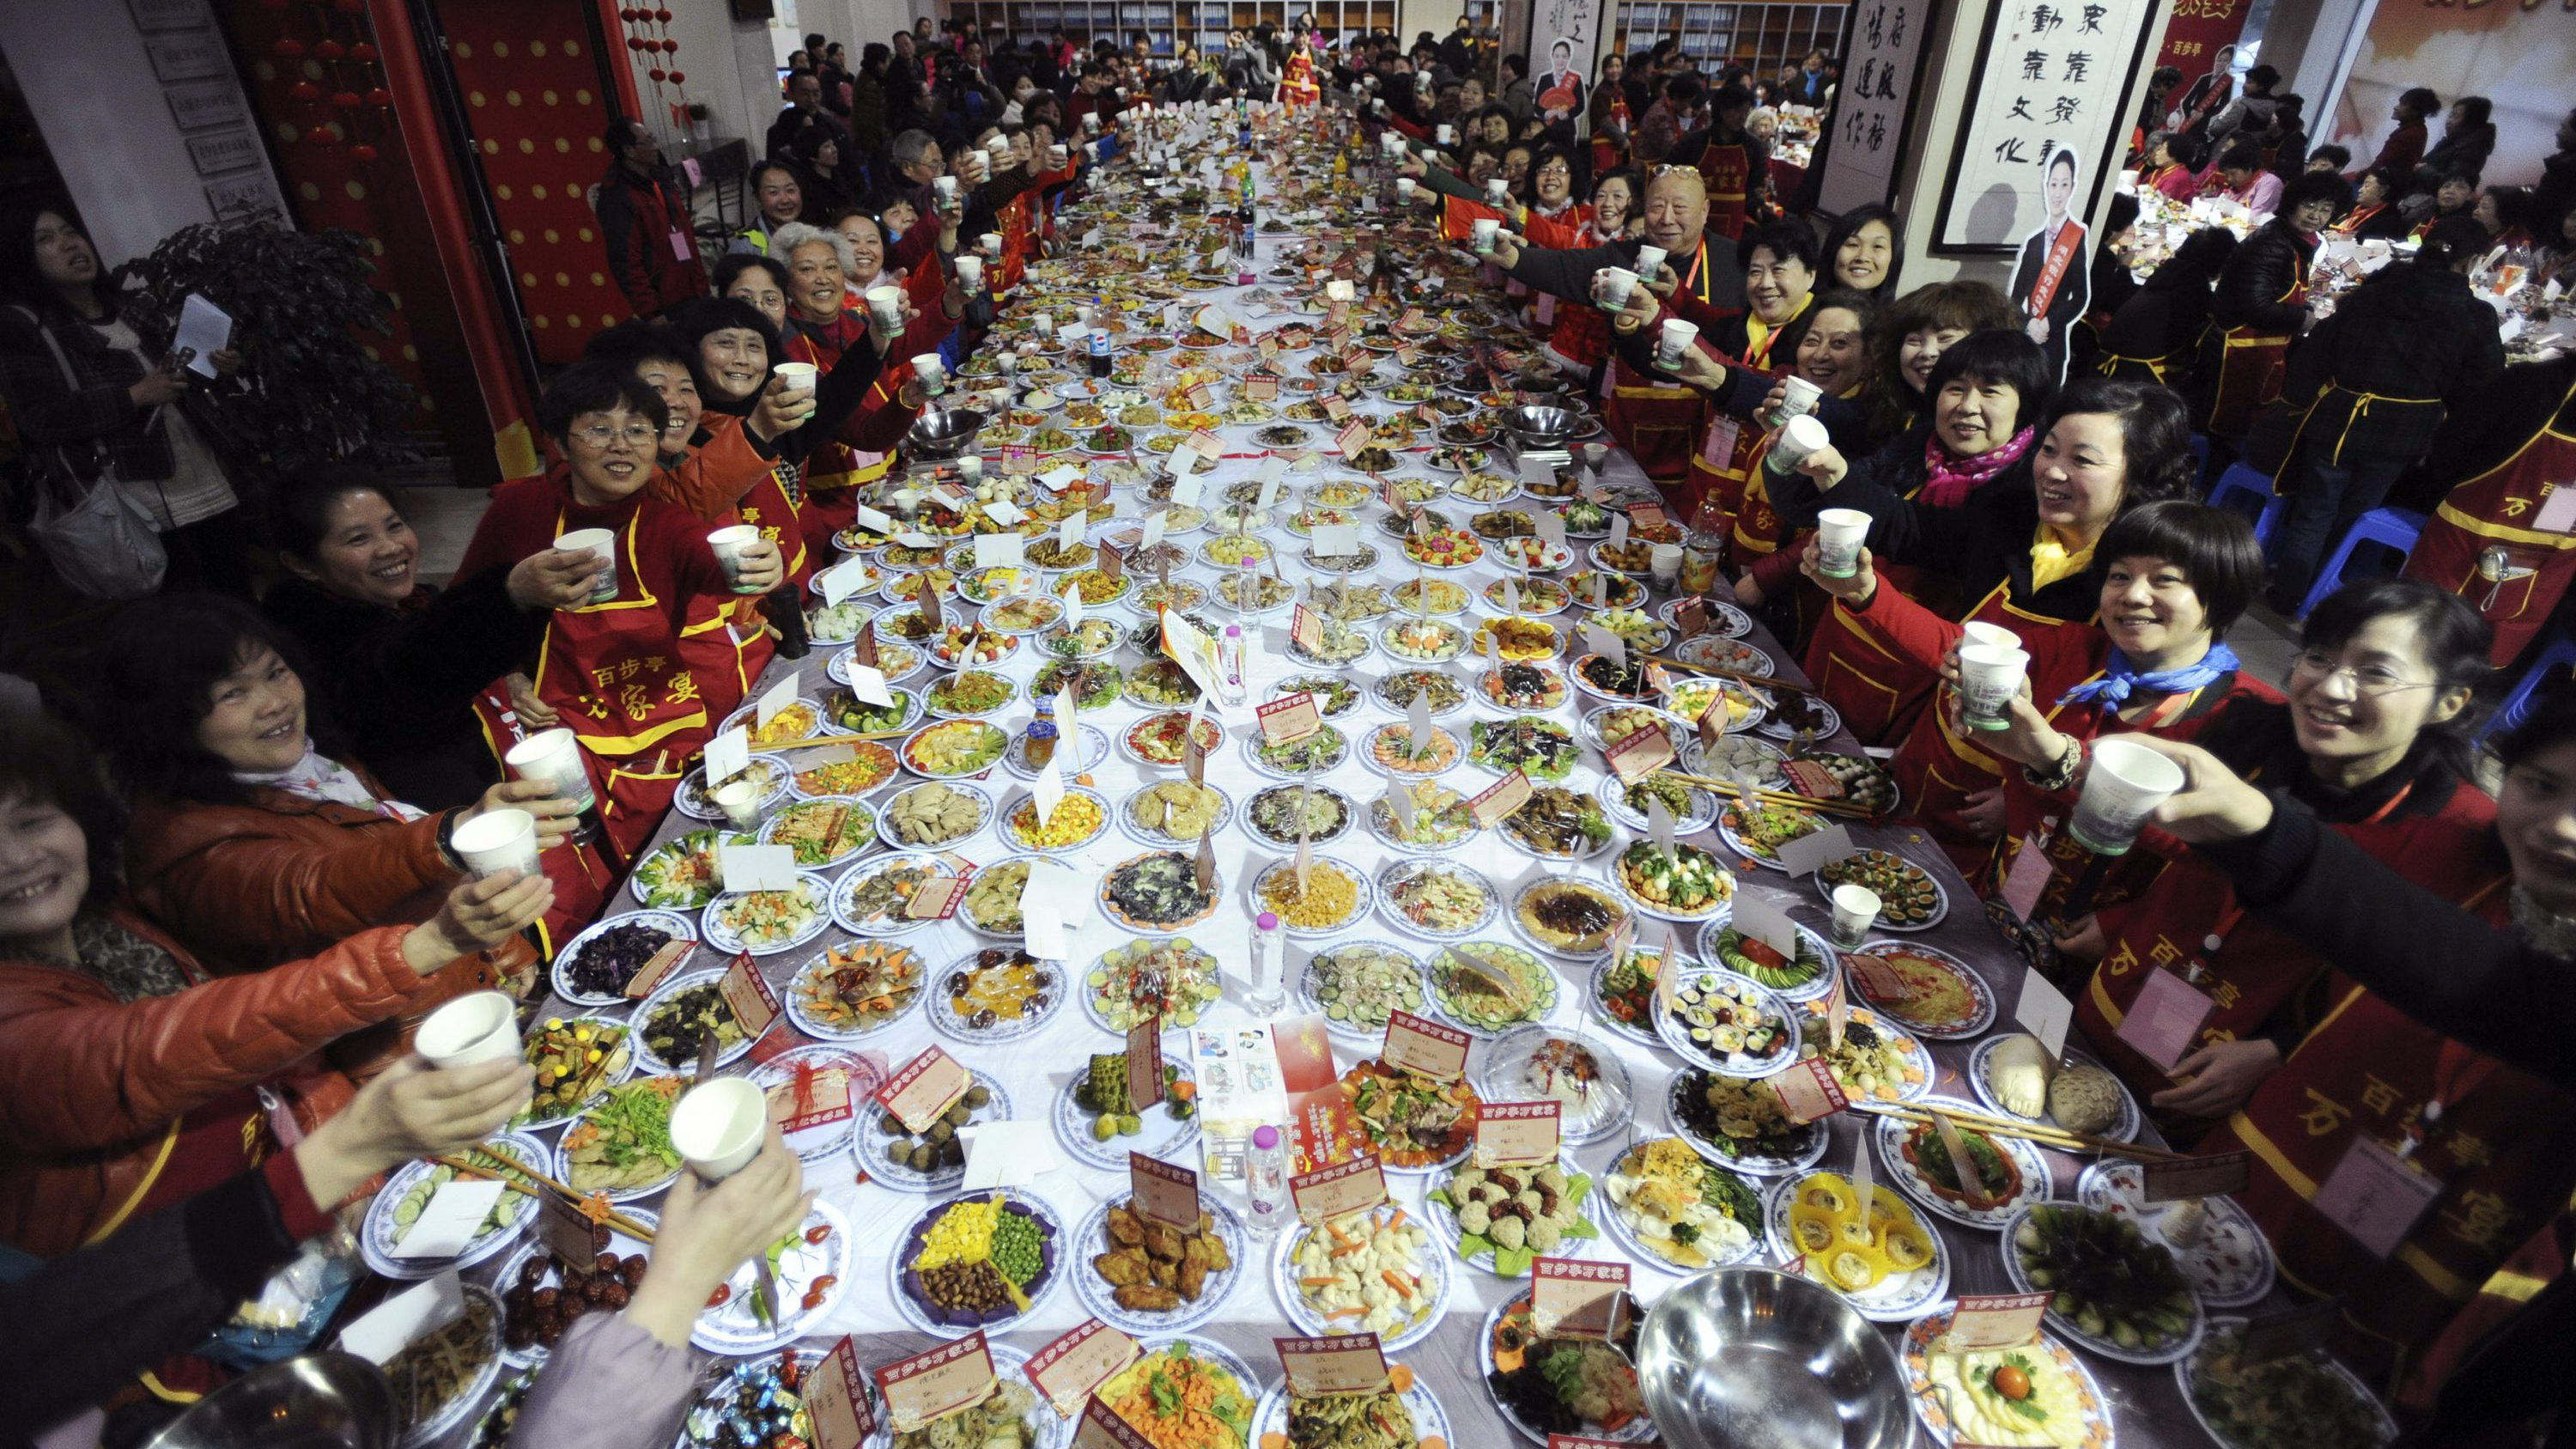 """Residents raise their glasses as they pose for photographs at a table full of dishes during a """"Ten thousand families dinner"""" organized by a local community to celebrate the upcoming Chinese Lunar New Year, in Wuhan, Hubei province January 24, 2014. A residential community in Wuhan hosted the mass dinner on Friday serving over 30,000 people with over 11,000 dishes of food cooked by the families of the community, local media reported. Picture taken January 24, 2014."""